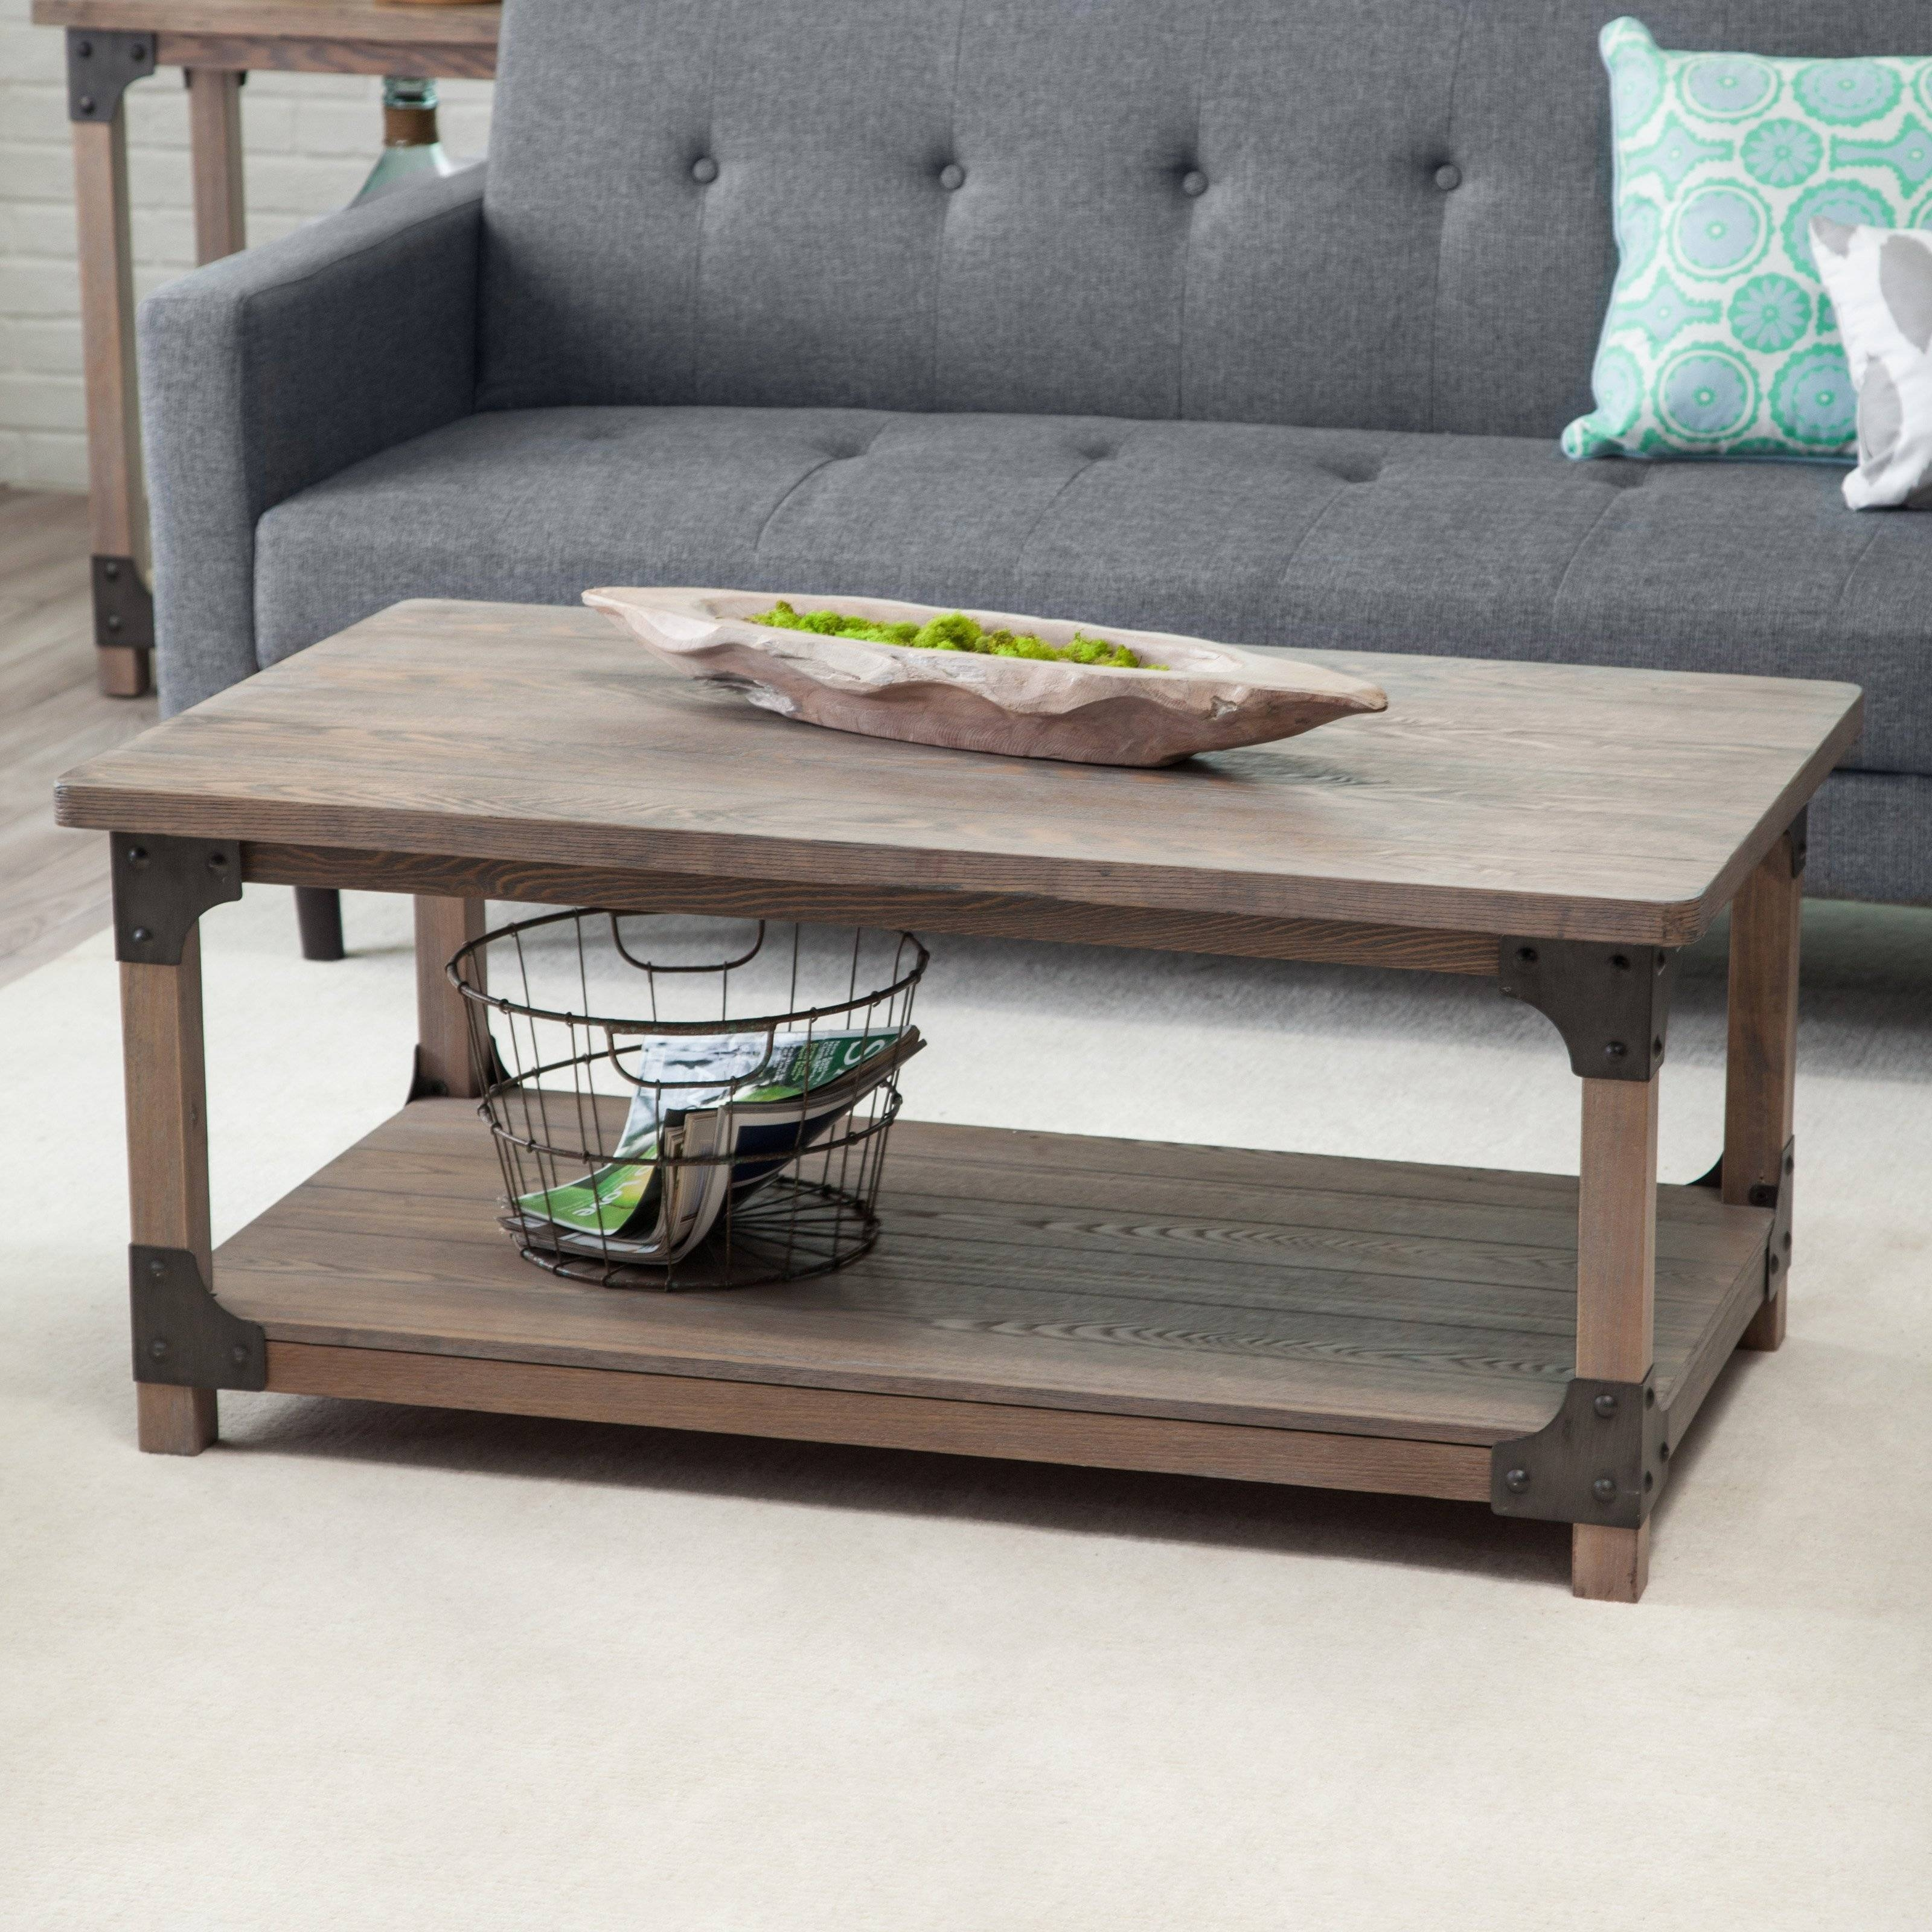 Belham Living Jamestown Rustic Coffee Table With Unique Driftwood for Rustic Wooden Coffee Tables (Image 1 of 15)